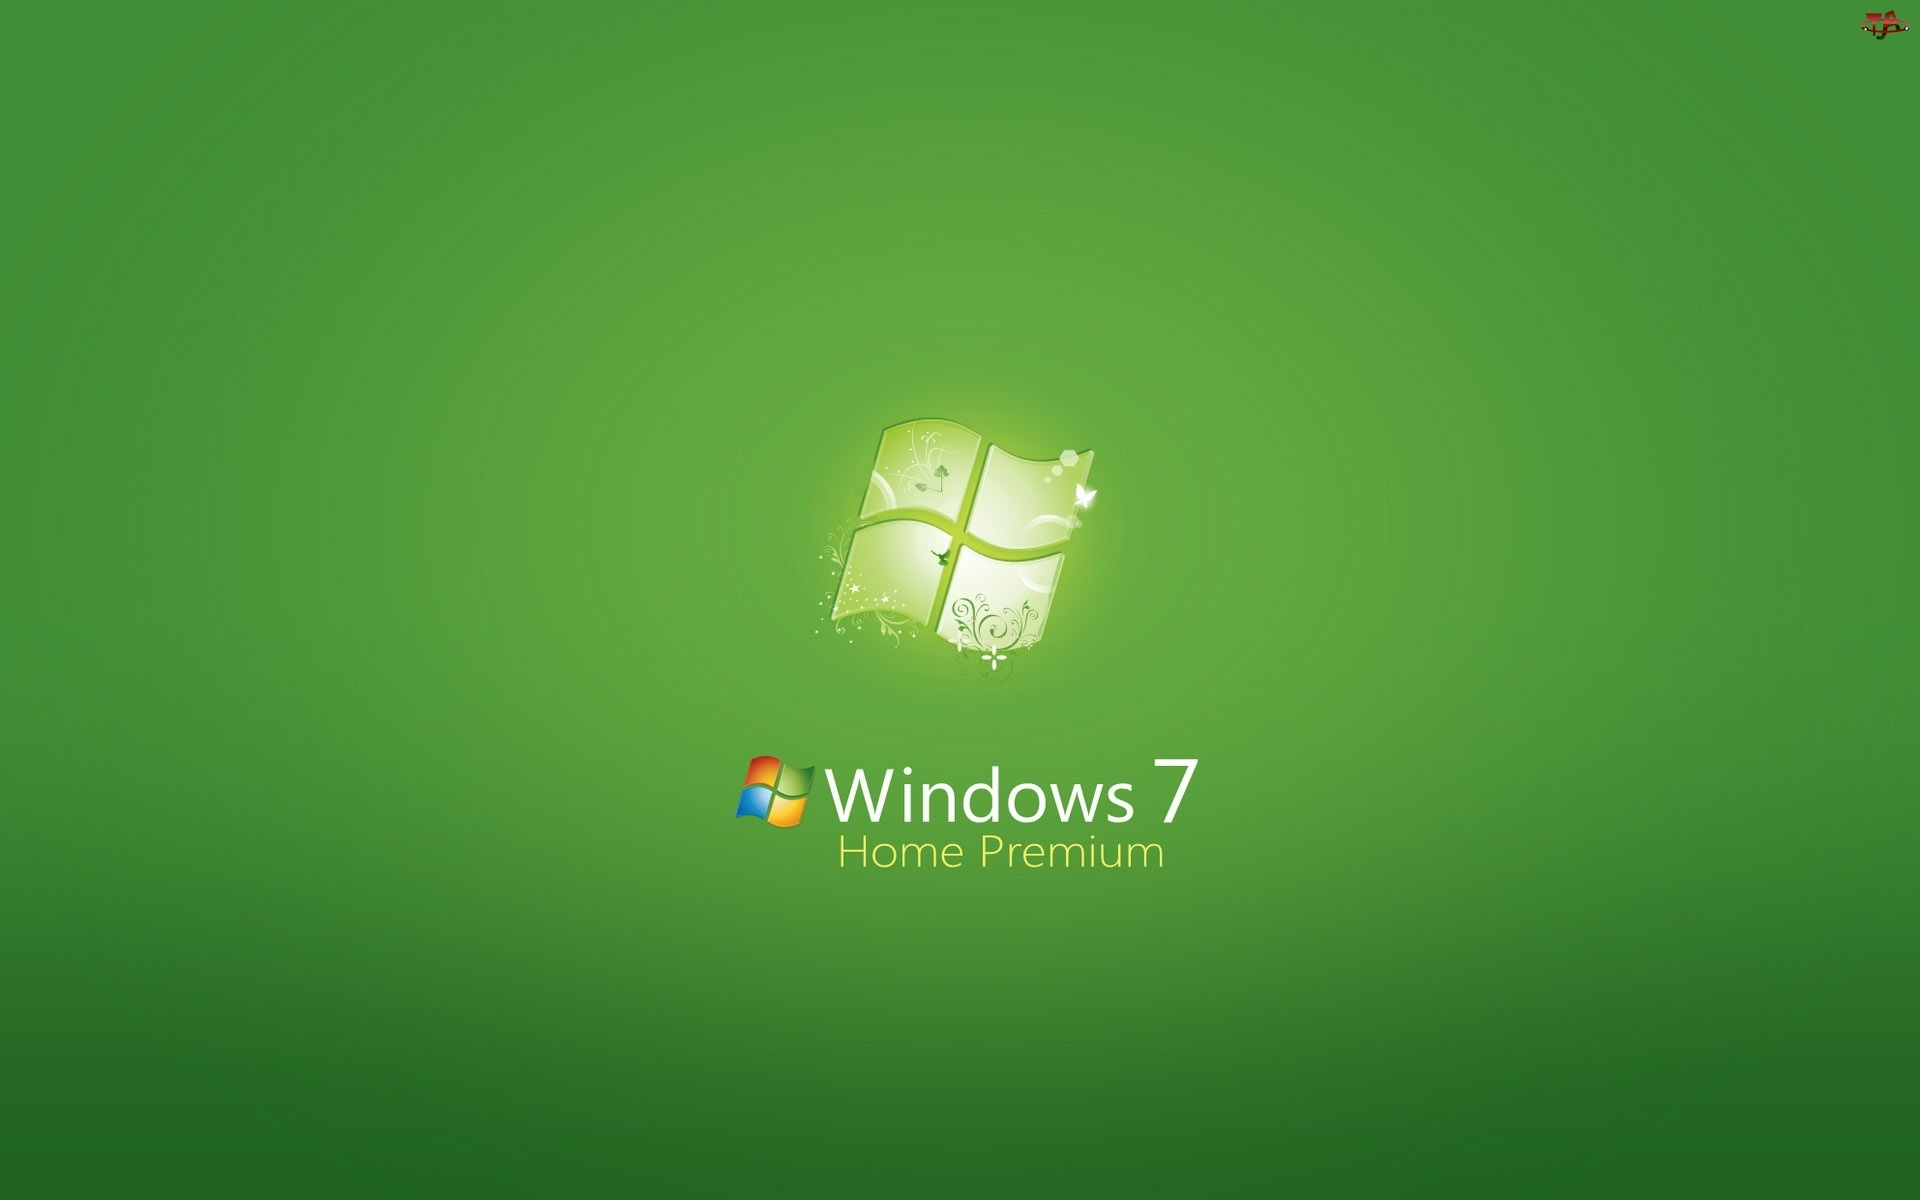 Premium, Windows 7, Home